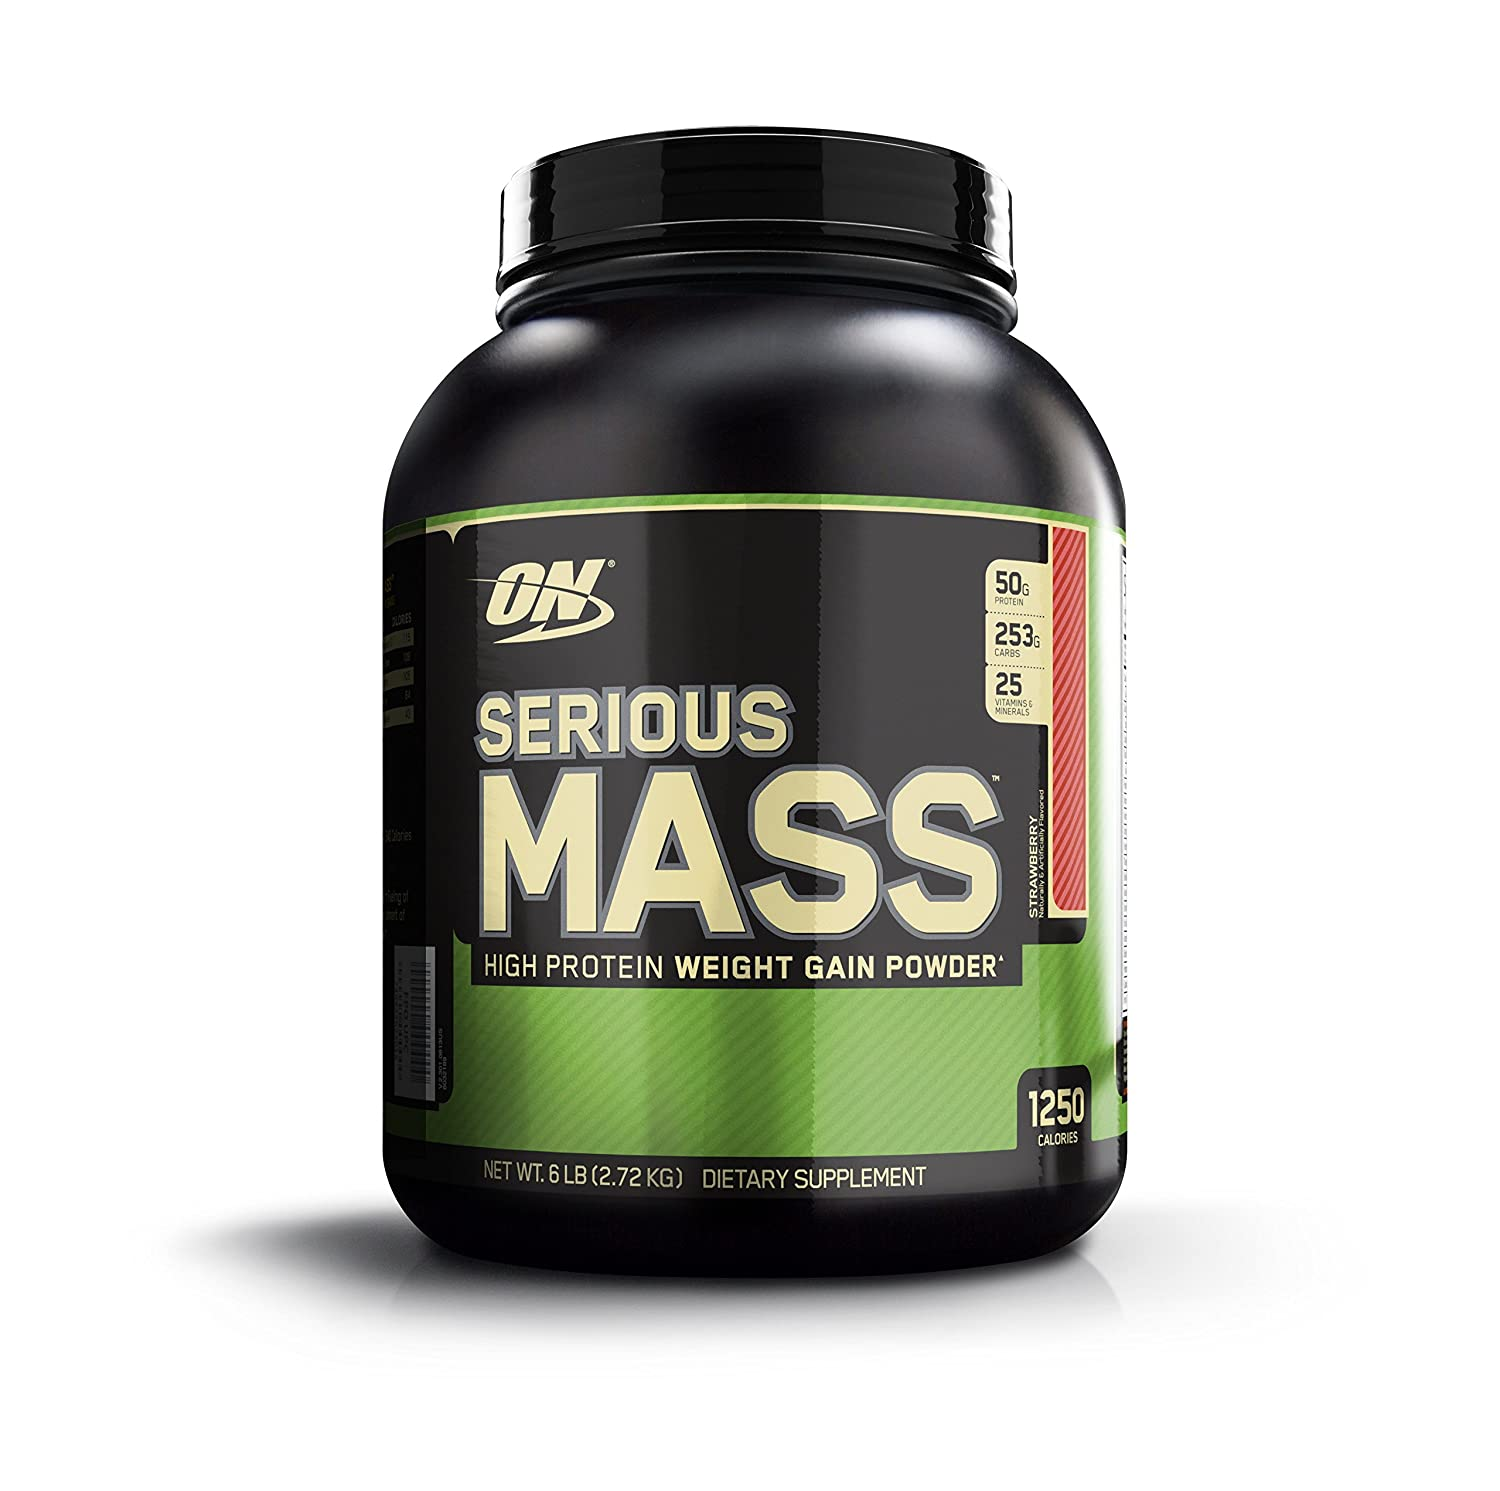 Optimum Nutrition Serious Mass Ganador, Fresa - 2720 g: Amazon.es: Salud y cuidado personal